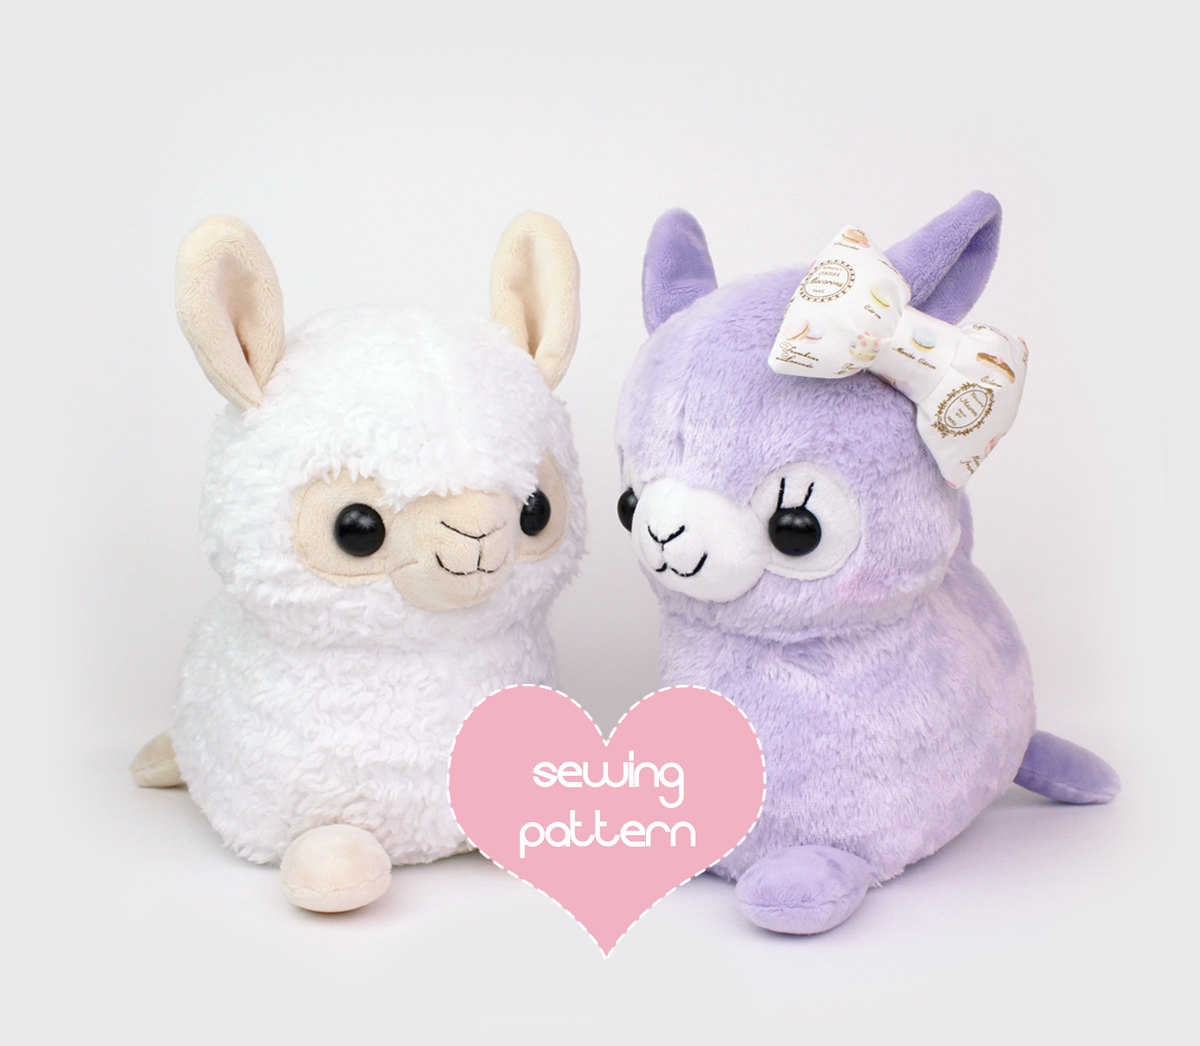 Kawaii Sewing Patterns Pdf Sewing Pattern Alpaca Llama Stuffed Animal Kawaii Etsy